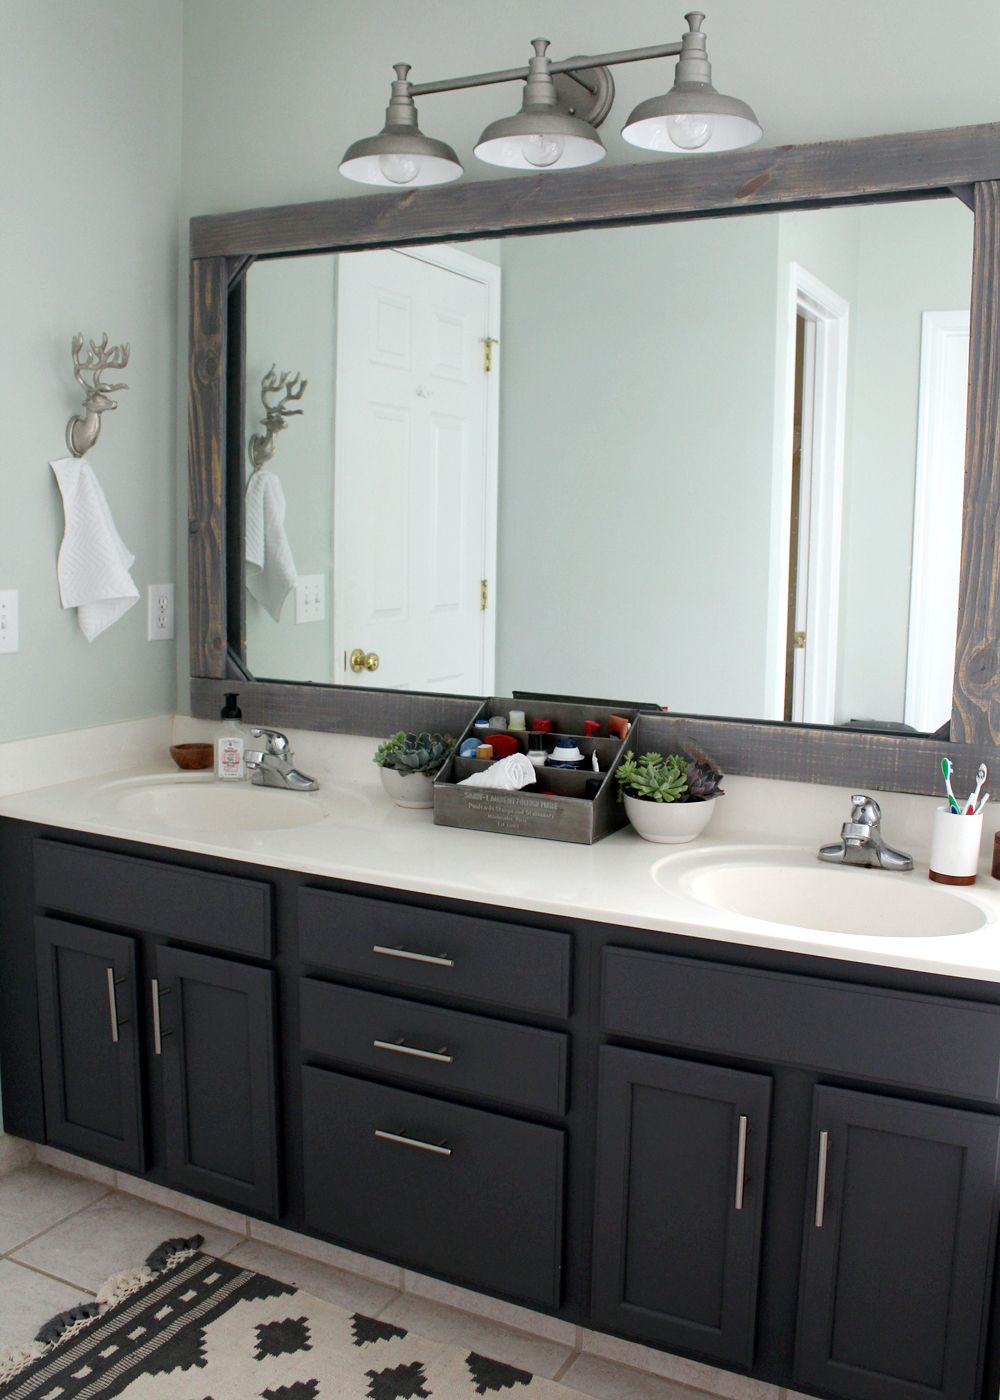 master bathroom update on a 300 budget budget bathroom on bathroom renovation ideas on a budget id=82545